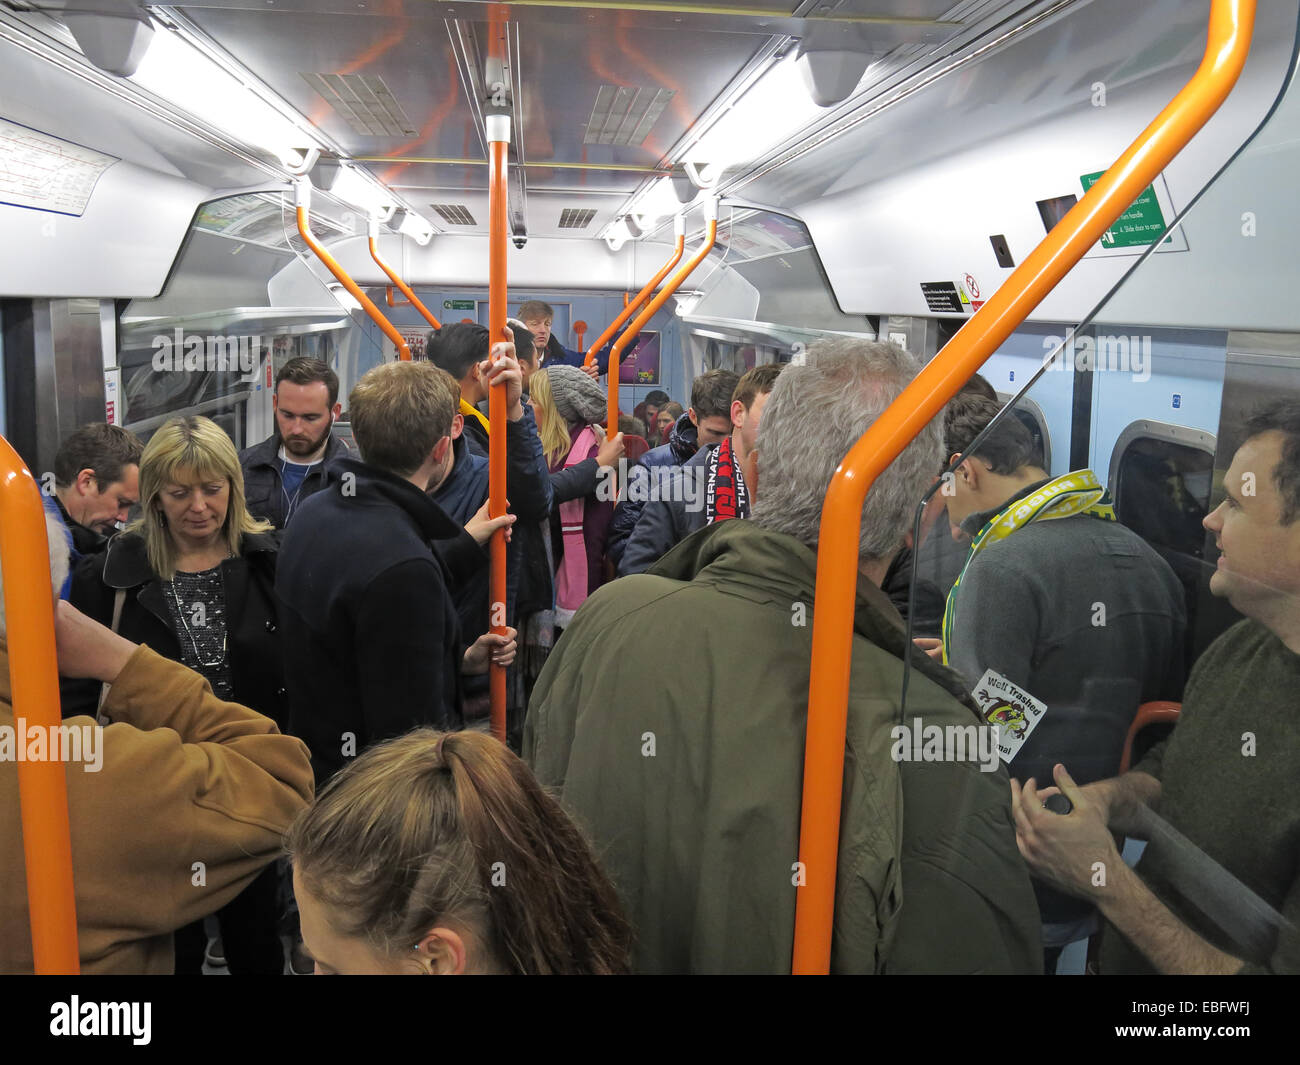 South,West,Trains,SWT,is,a,British,train,operating,company,owned,by,Stagecoach,Group,operating,the,South,Western,franchise,at,night,evening,crush,packed,commuter,peak,time,peaktime,public,transport,fail,failing,BR,British,Rail,service,award,awarded,subsidy,wasted,waste,of,expensive,ticket,GoTonySmith,Network,Rail,Clapham,jn,Junction,Junc,season,tickets,poor,complaint,complaints